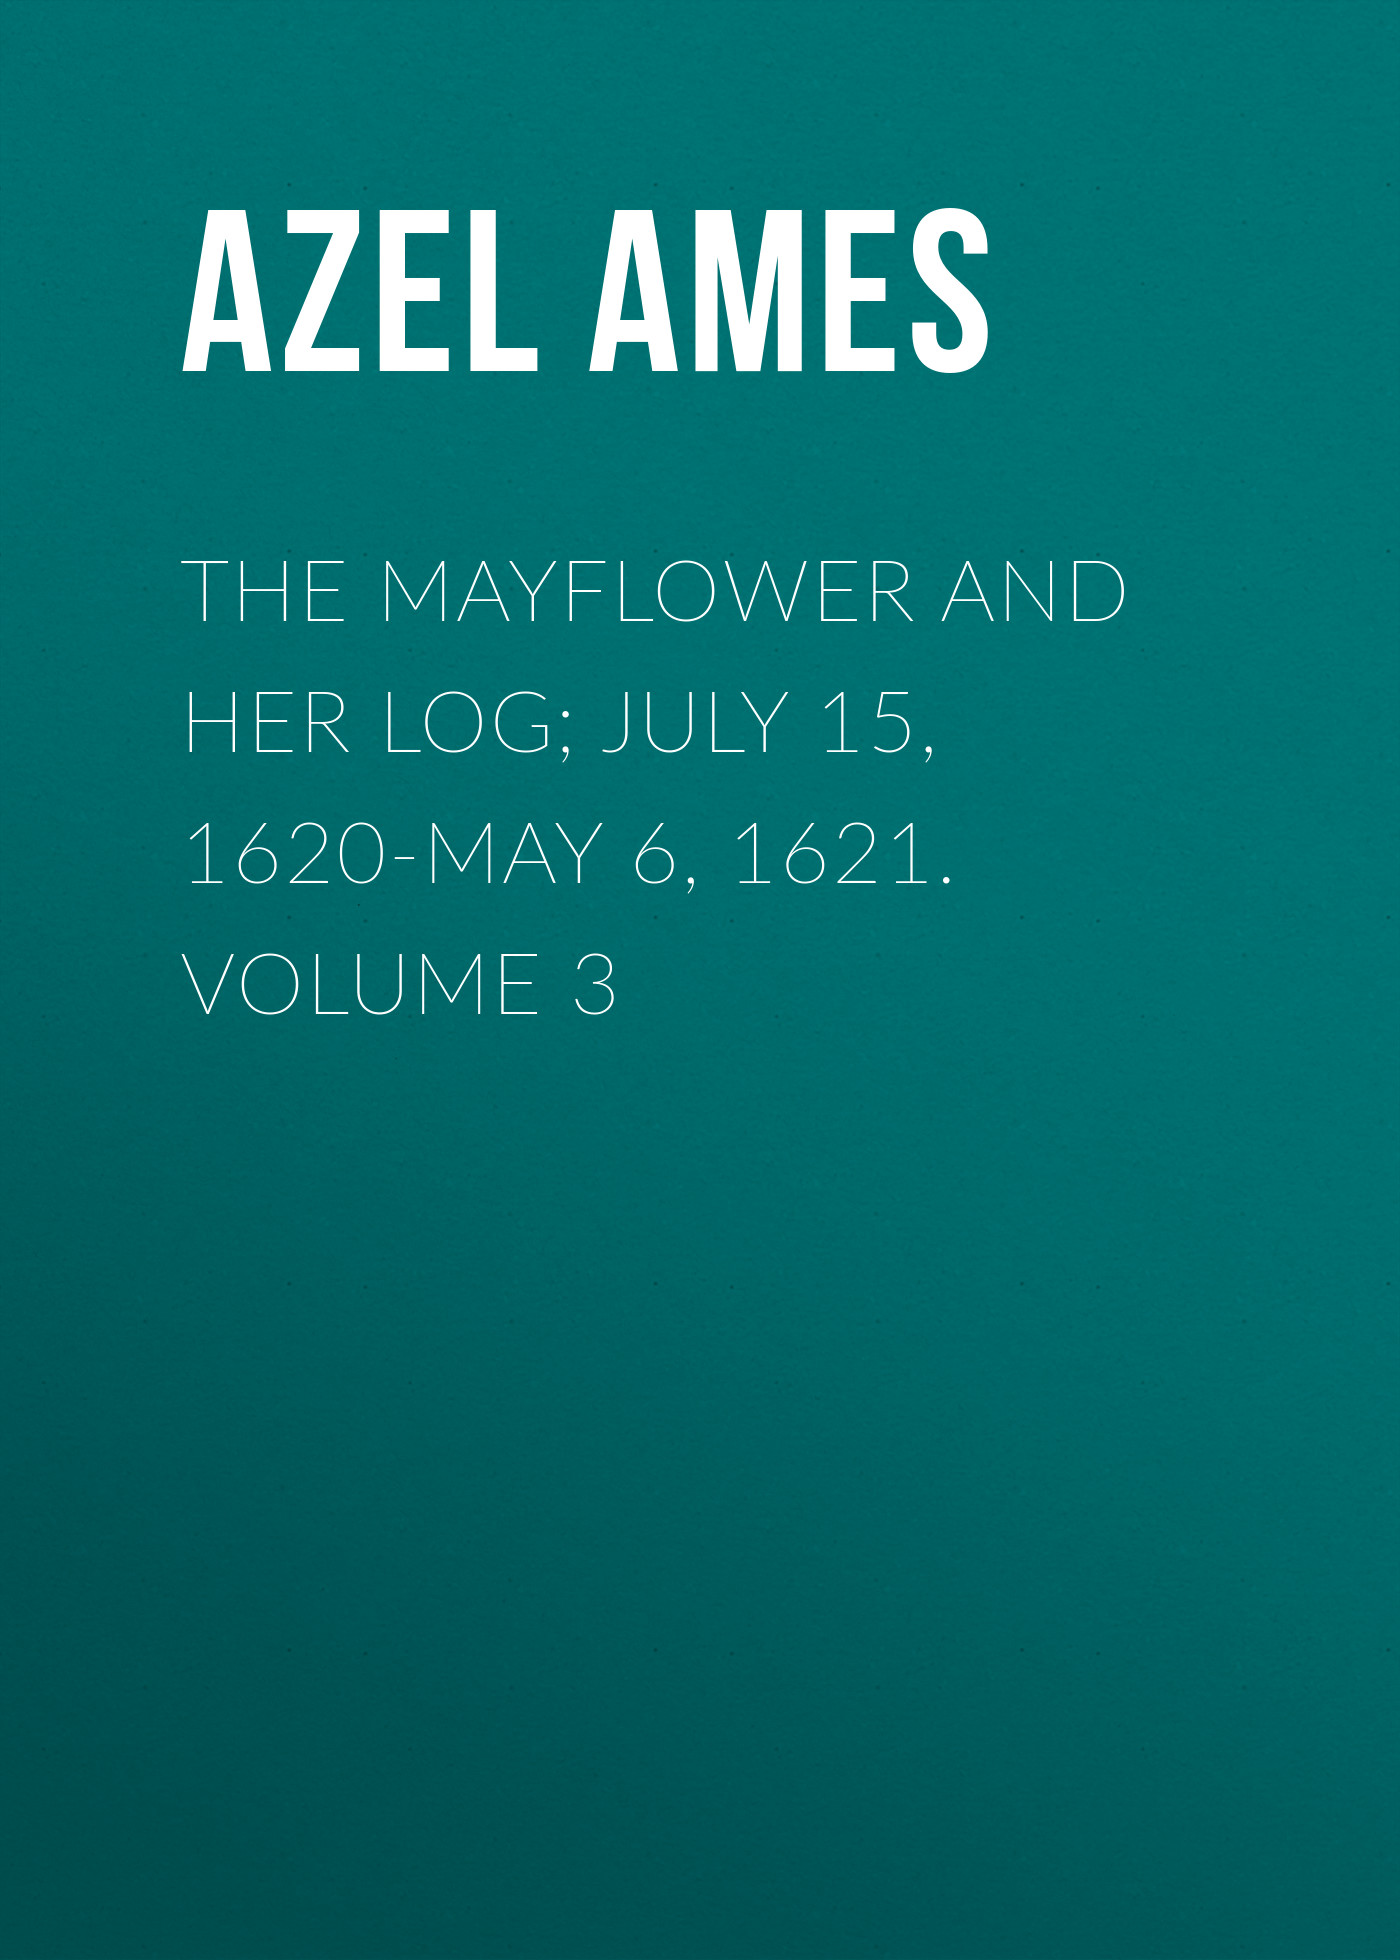 Azel Ames The Mayflower and Her Log; July 15, 1620-May 6, 1621. Volume 3 ardsley ames encounter the poet